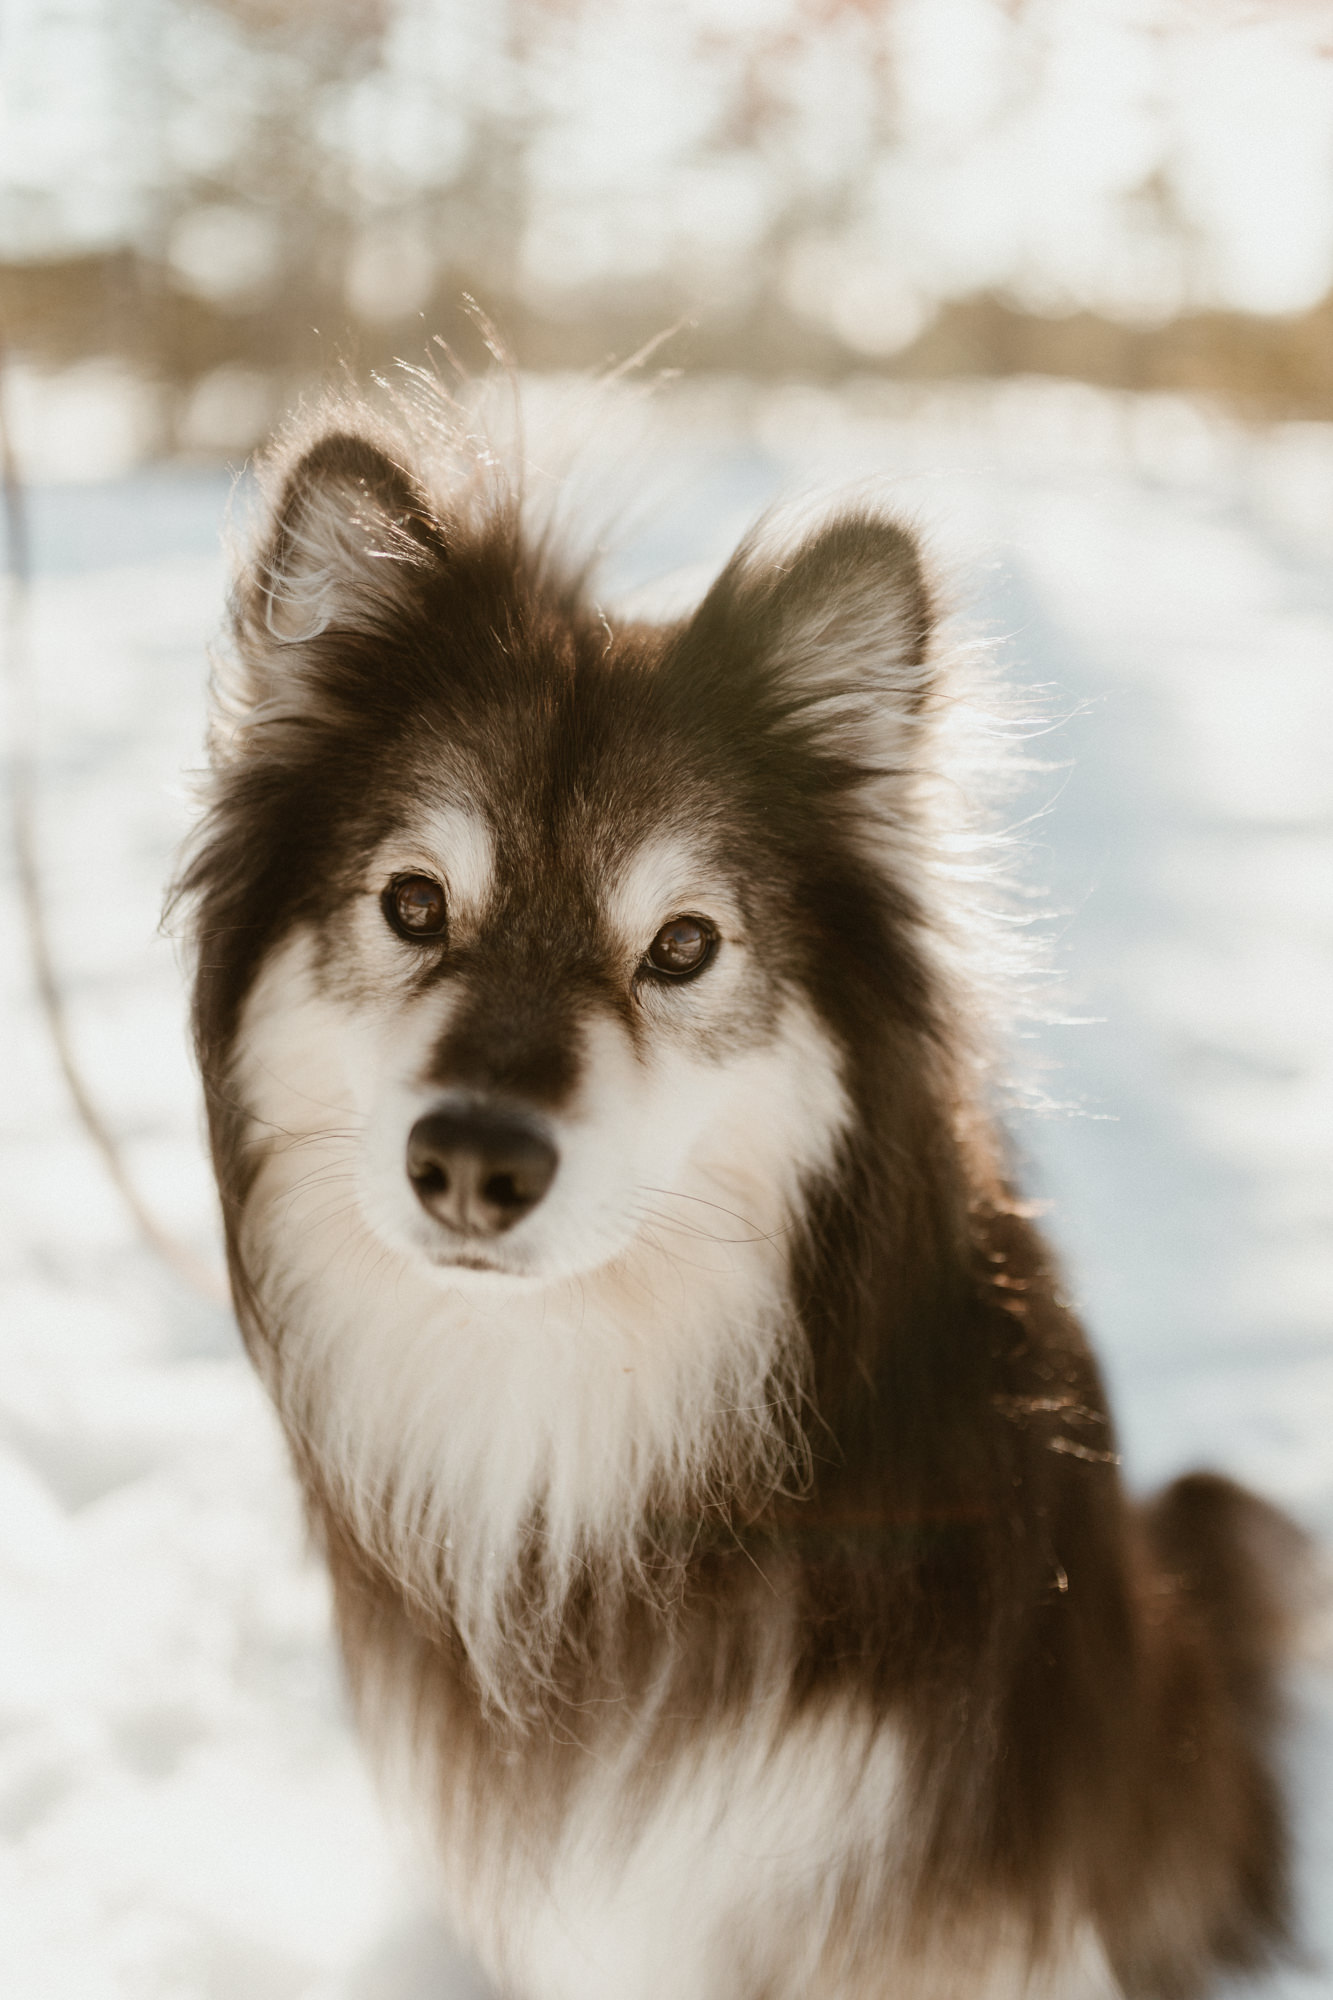 A Finnish Lapphund Dog sitting in the snow.